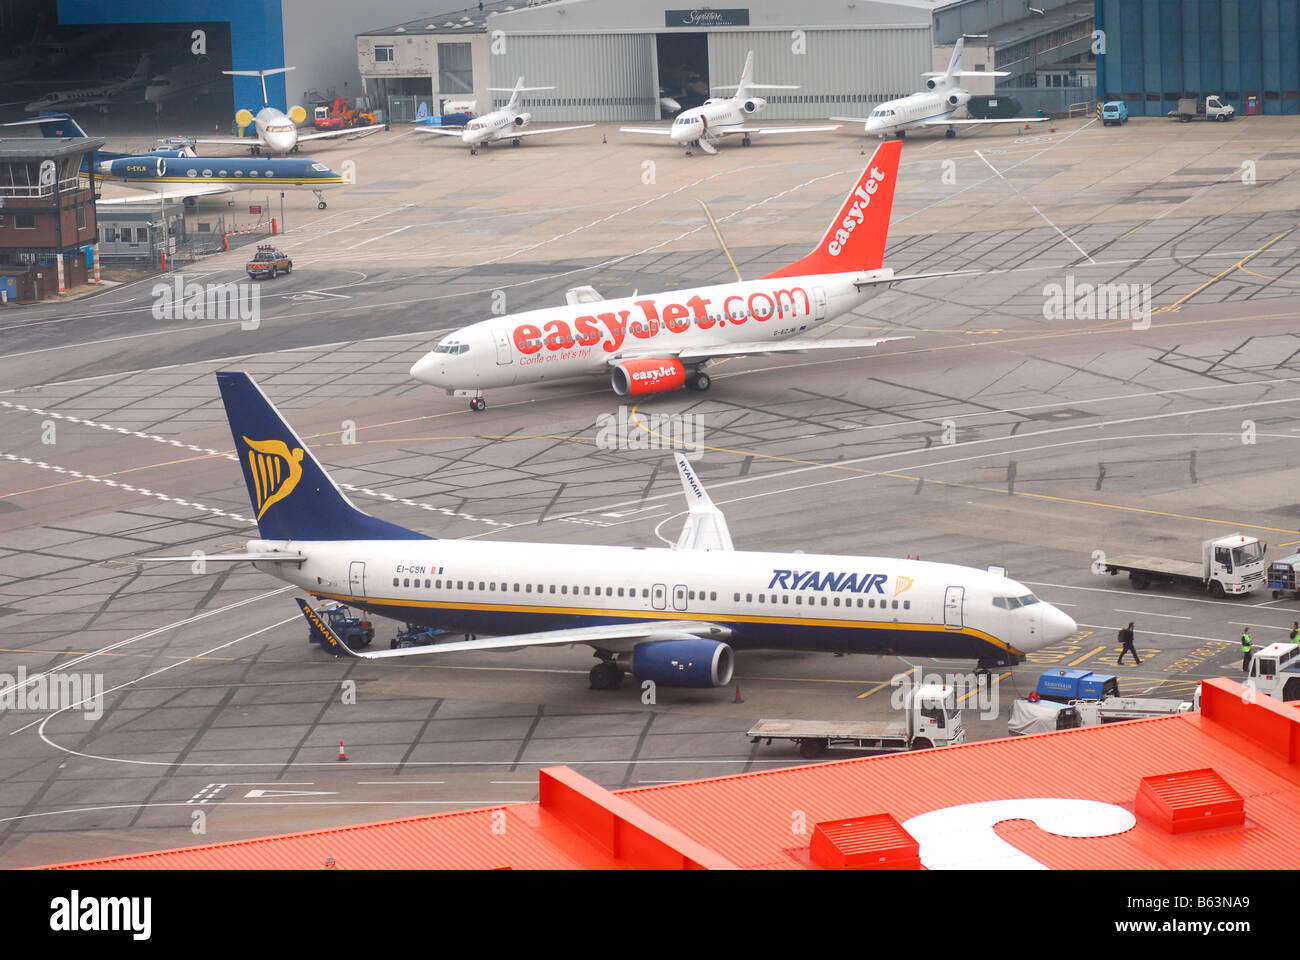 Rivals. easyjet and Ryanair planes pass each other at Luton Airport. - Stock Image